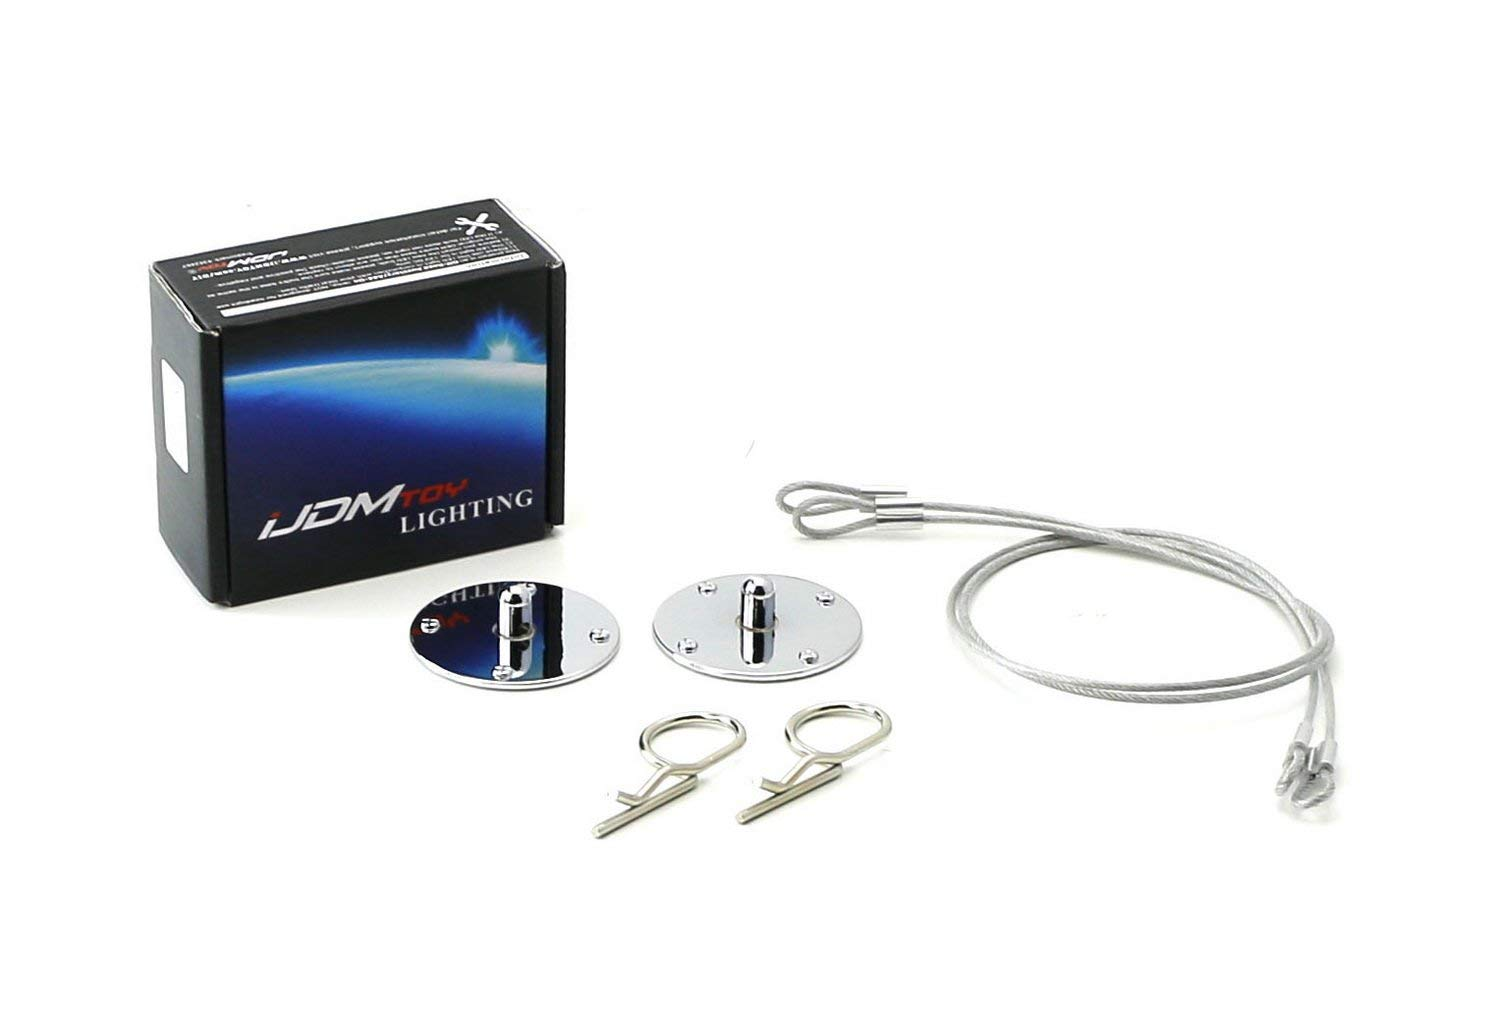 iJDMTOY Set of Classic 2.5' Chrome Finish Billet Aluminum Hood Pin Appearance Kit w/Cable For Any Car, Truck, SUV, etc iJDMTOY Auto Accessories